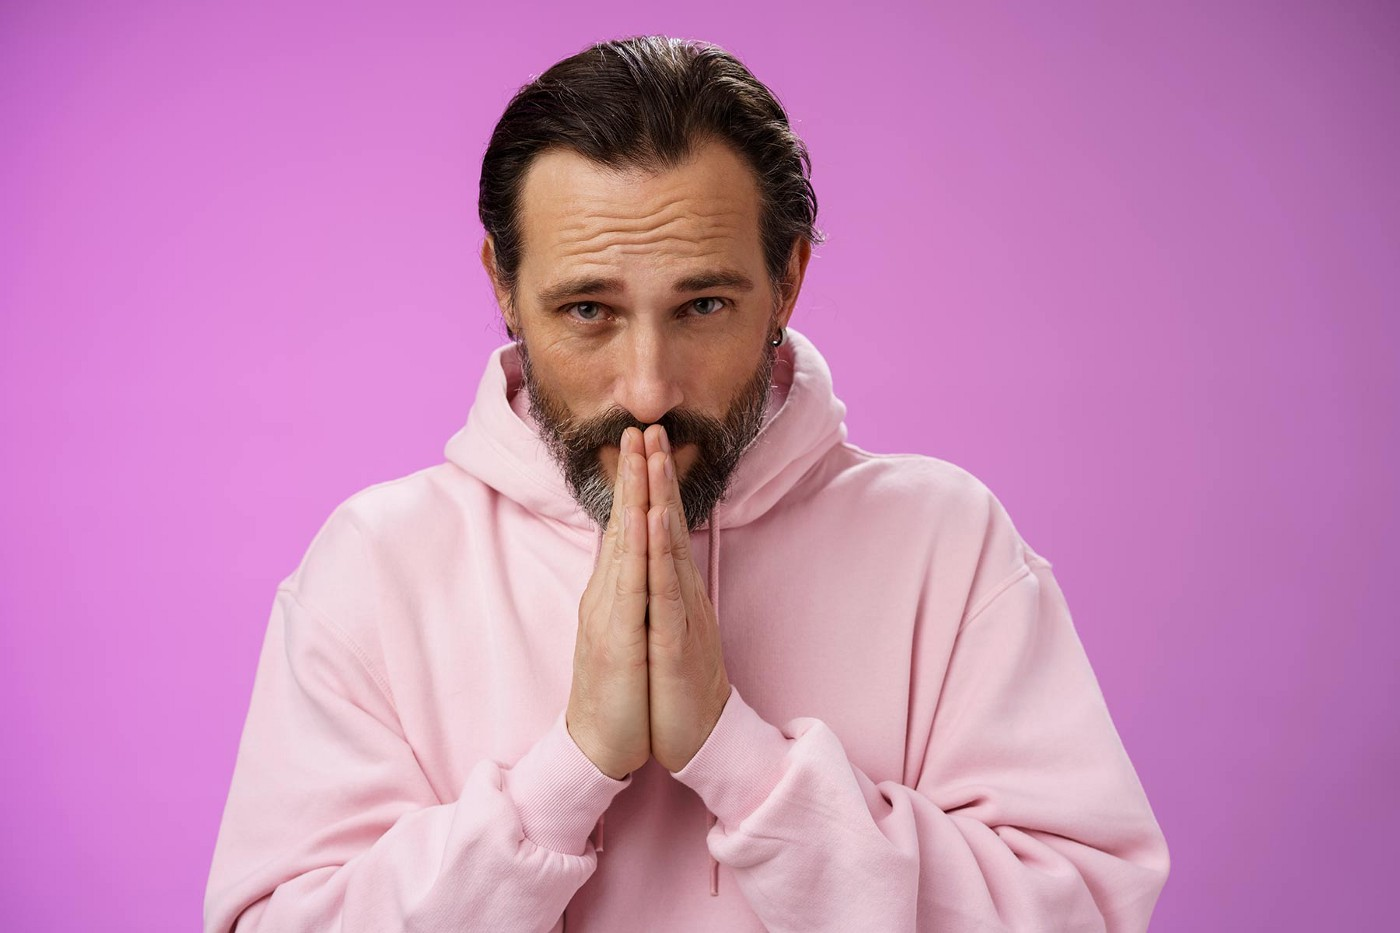 A middle-aged man wearing a pink sweatshirt says please with his hands up to his face.